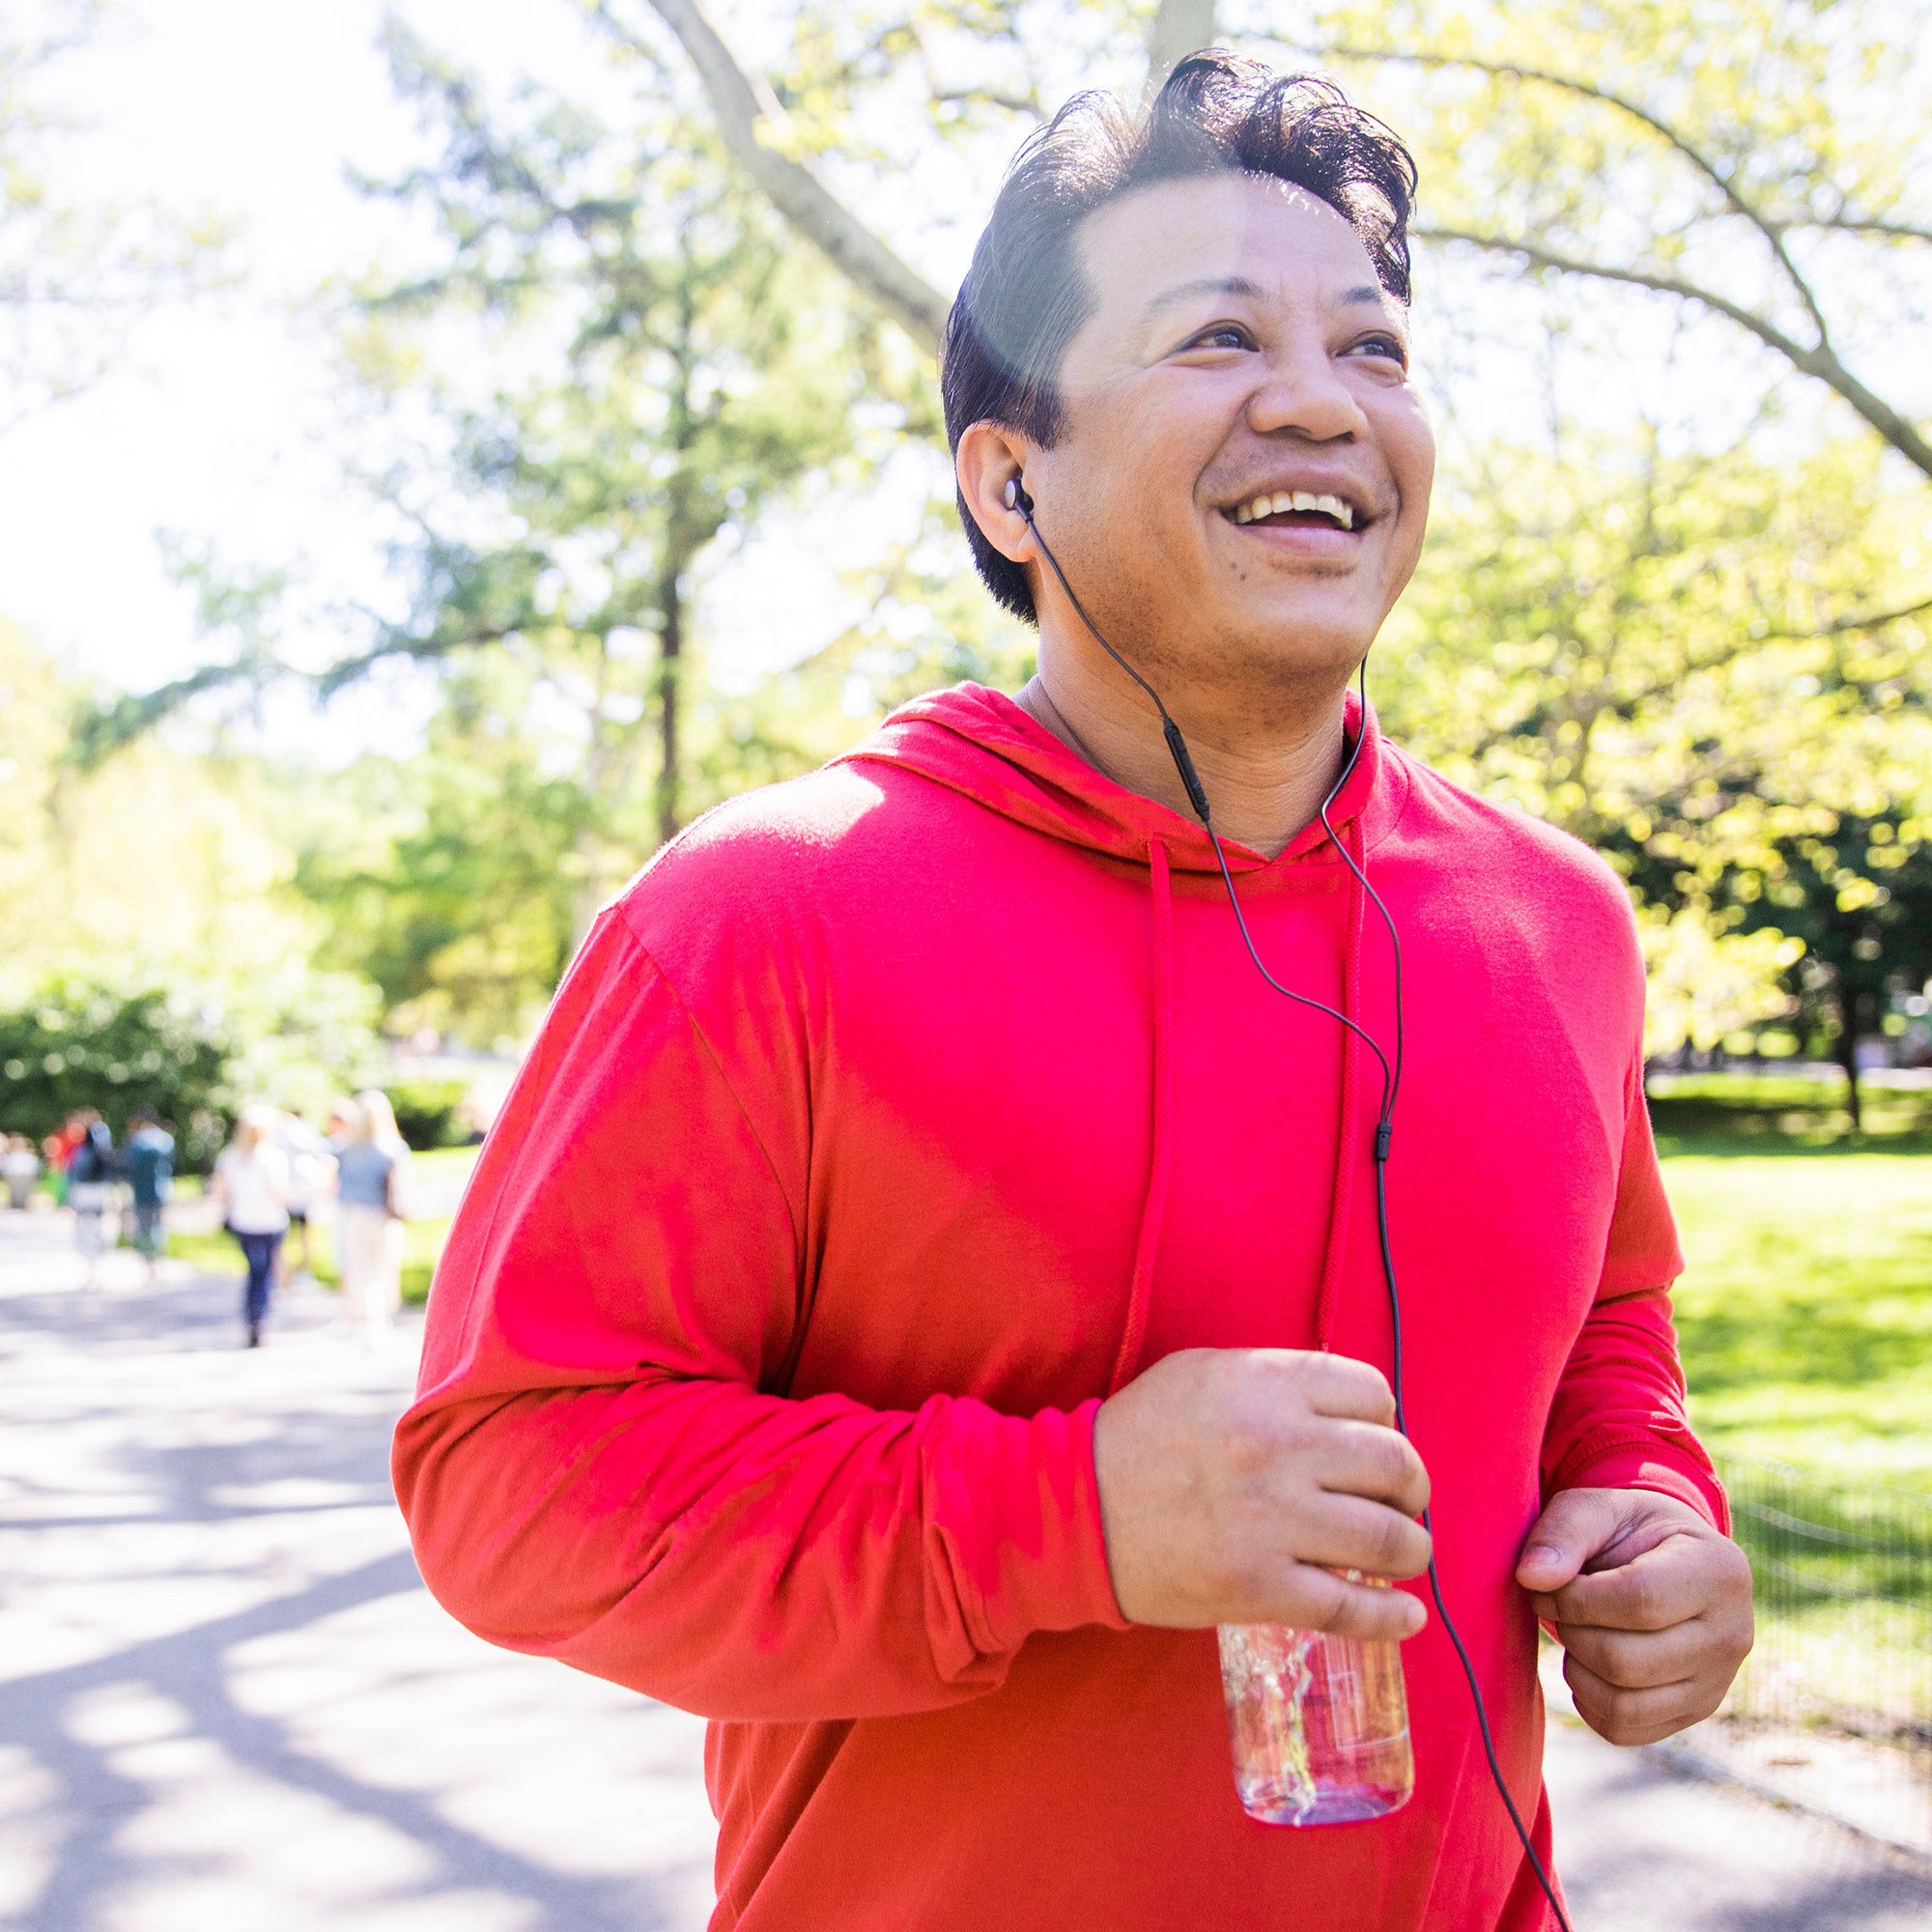 A man wearing a red hooded sweatshirt runs through a park while listening to a podcast on his mobile phone.